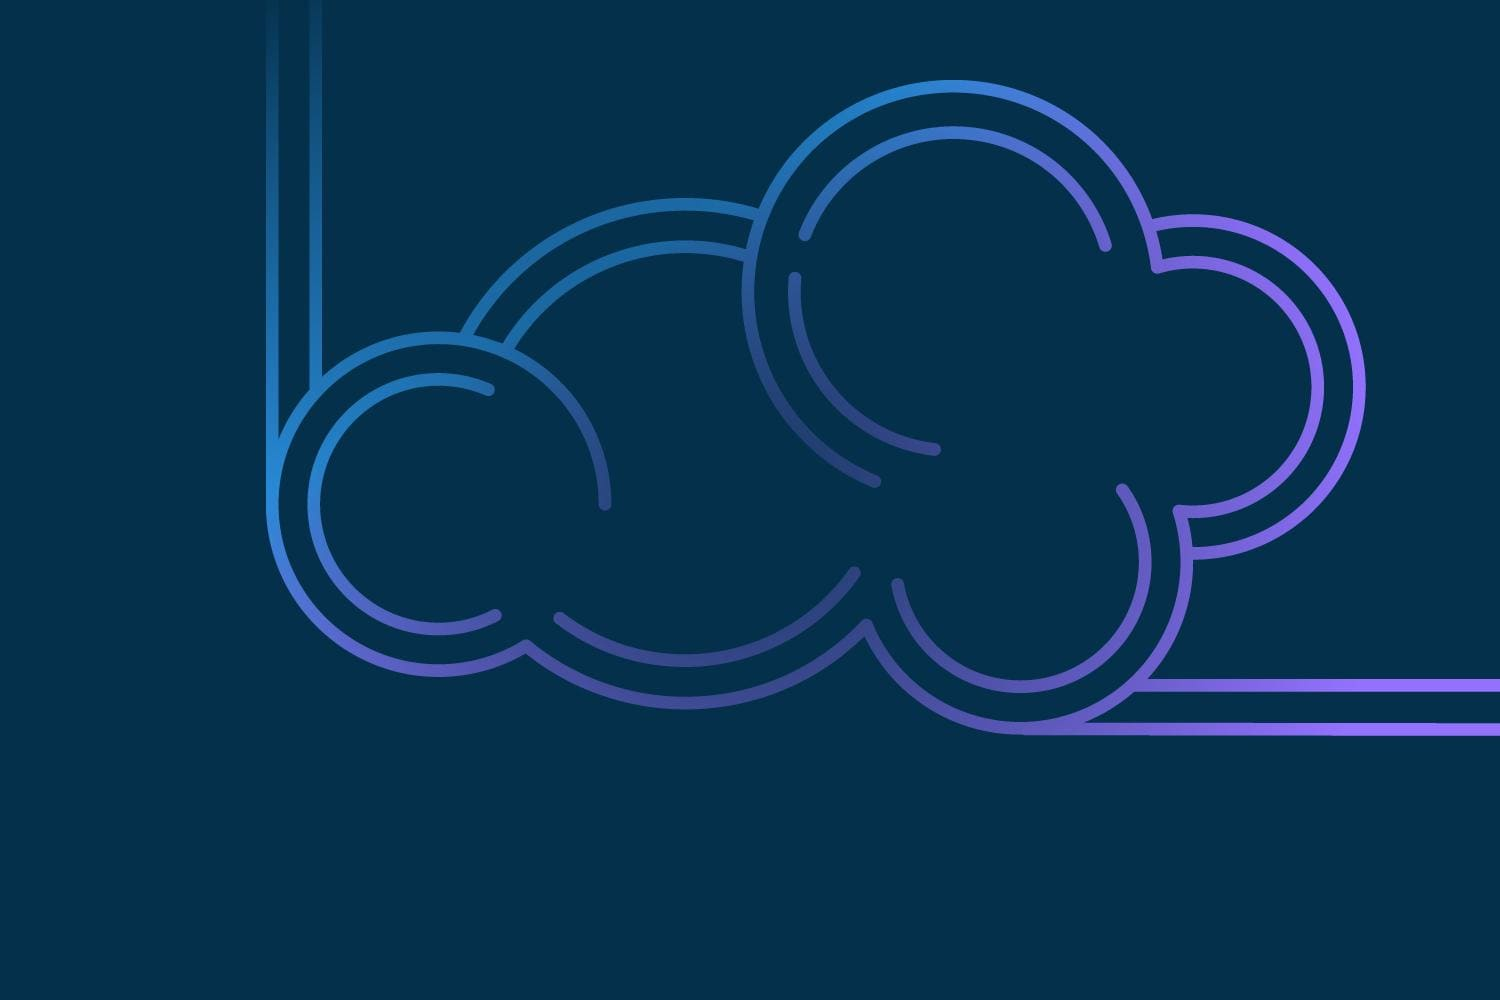 Violet and blue abstract cloud on dark blue background